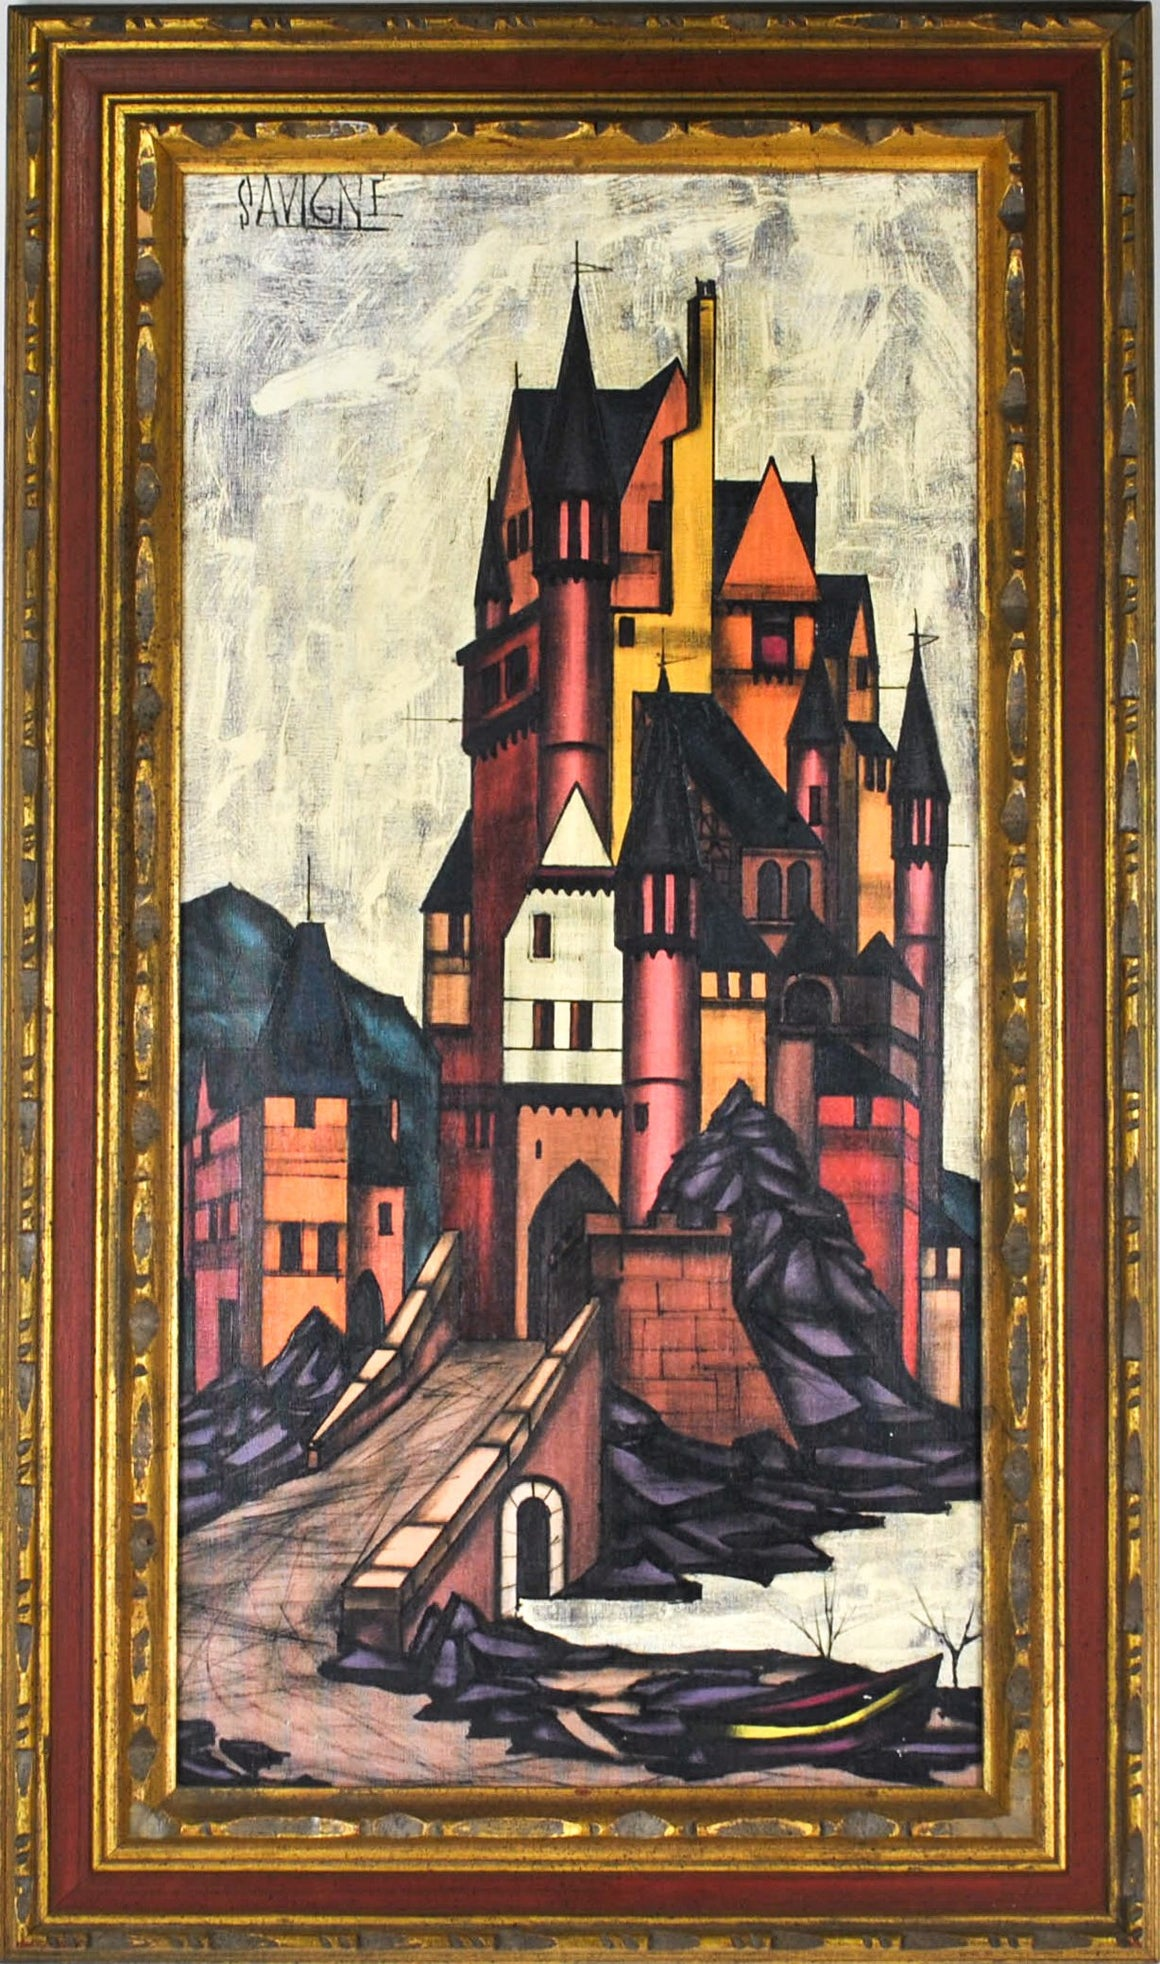 D.H. Savigne - Castle - Oil Painting - c 1960